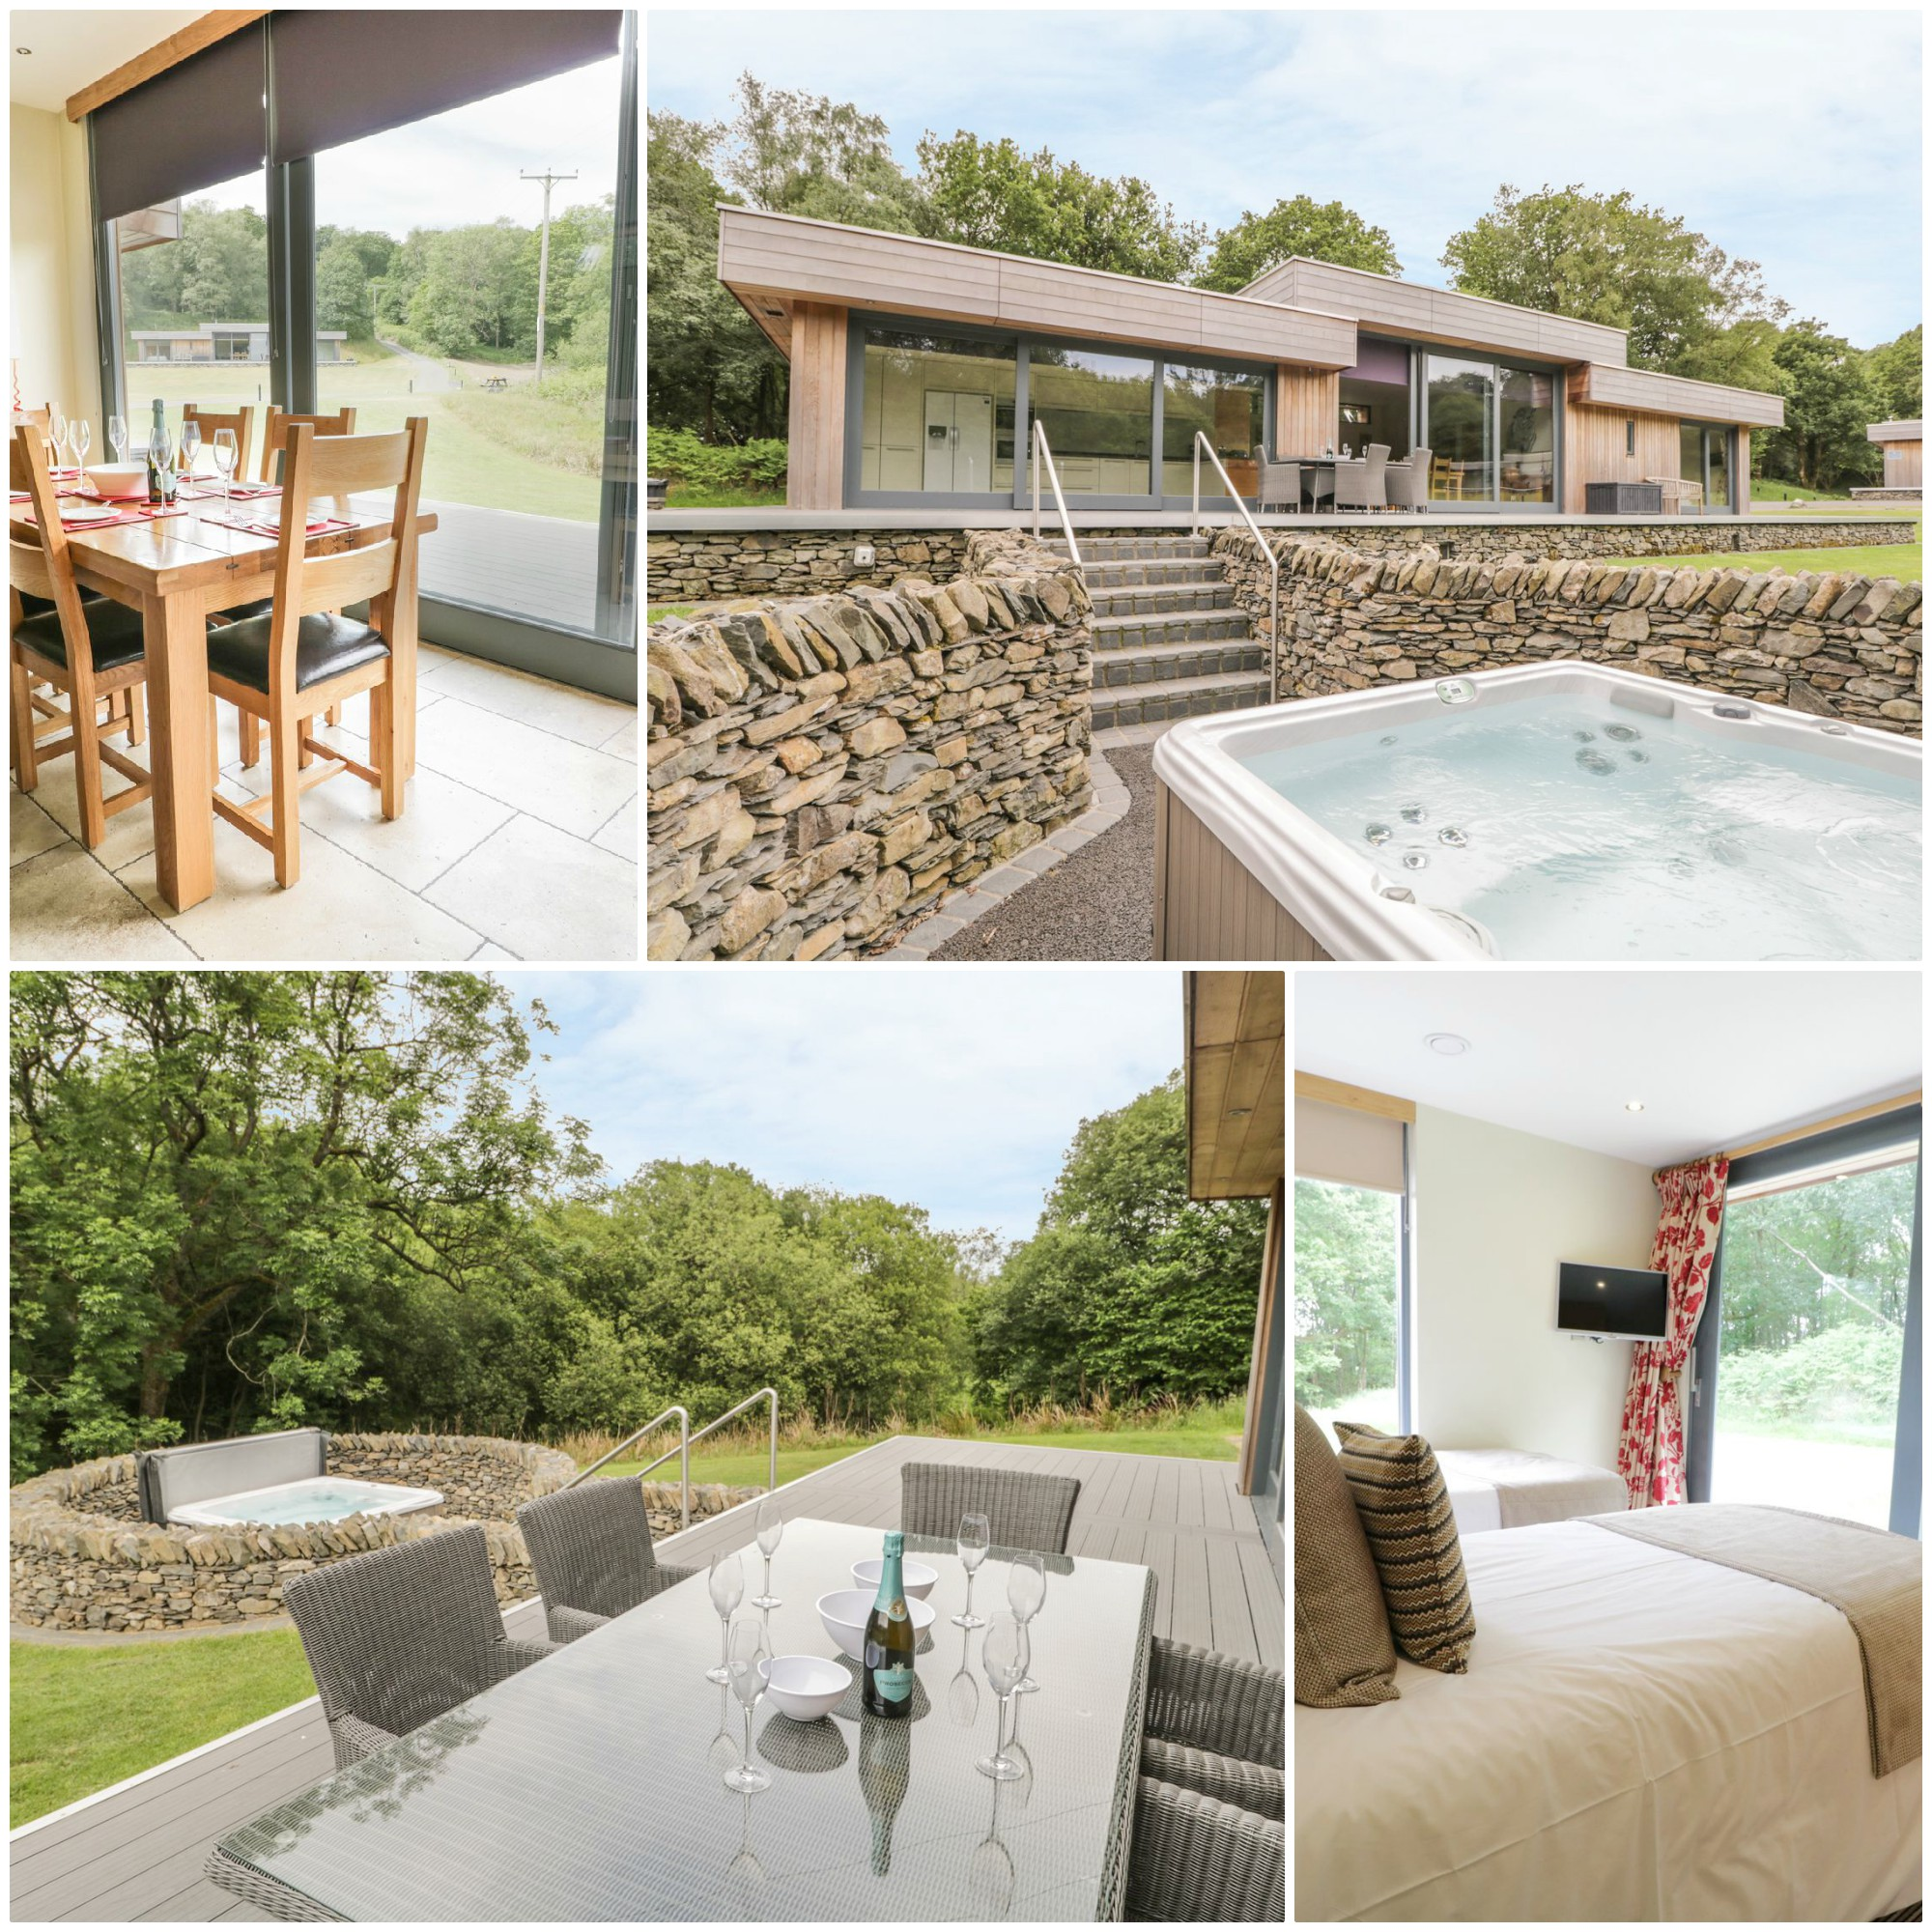 Luxurious lodge for 6 just south of the southern tip of Windermere